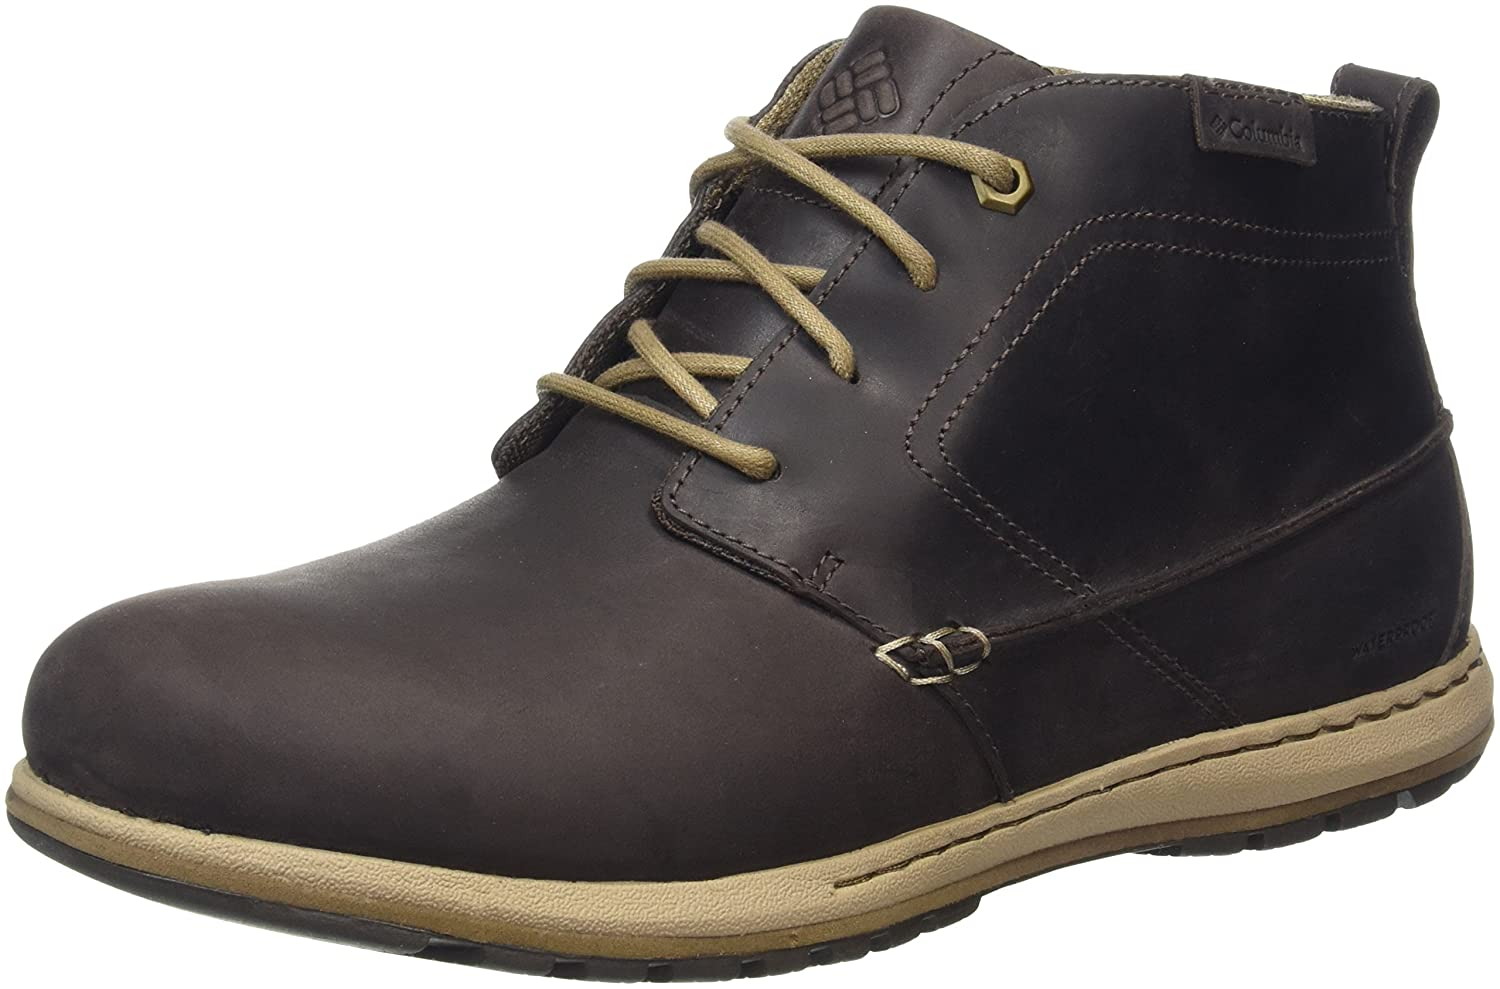 TALLA 46 EU. Columbia Davenport Chukka Waterproof Leather, Oxford para Hombre